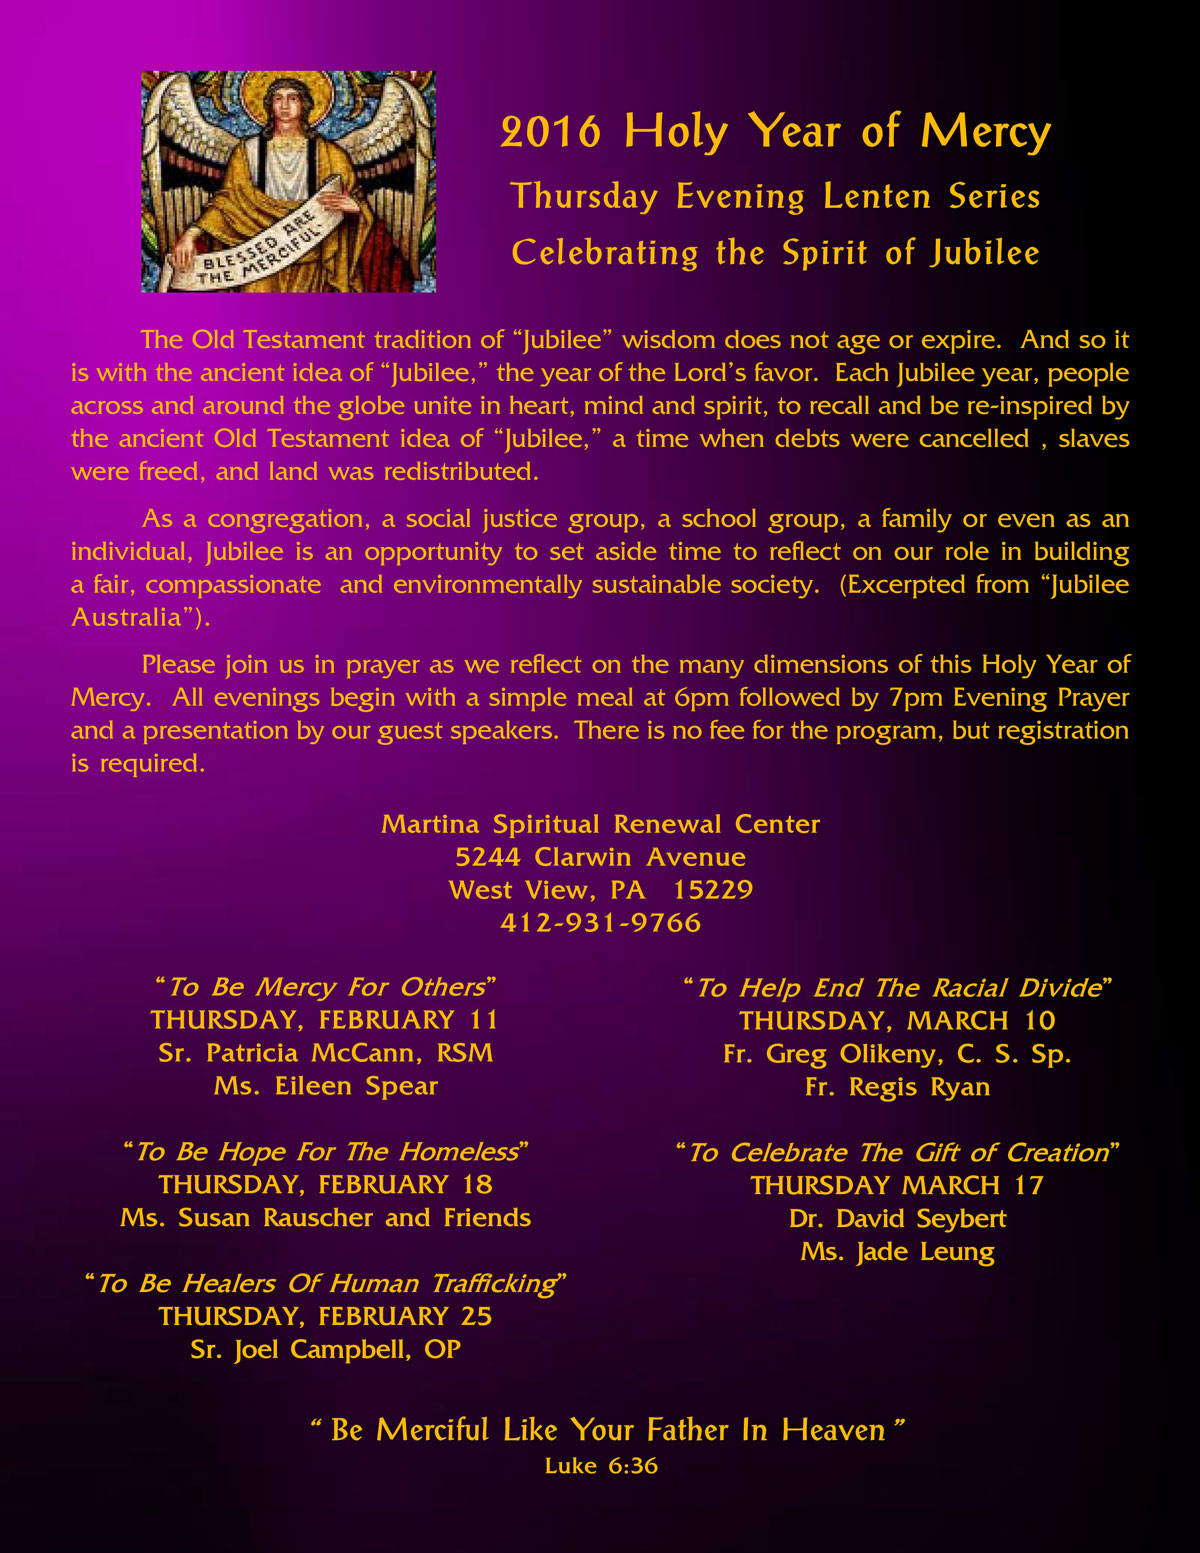 Sisters of the Holy Spirit » 2016 Holy Year of Mercy – Lenten Series